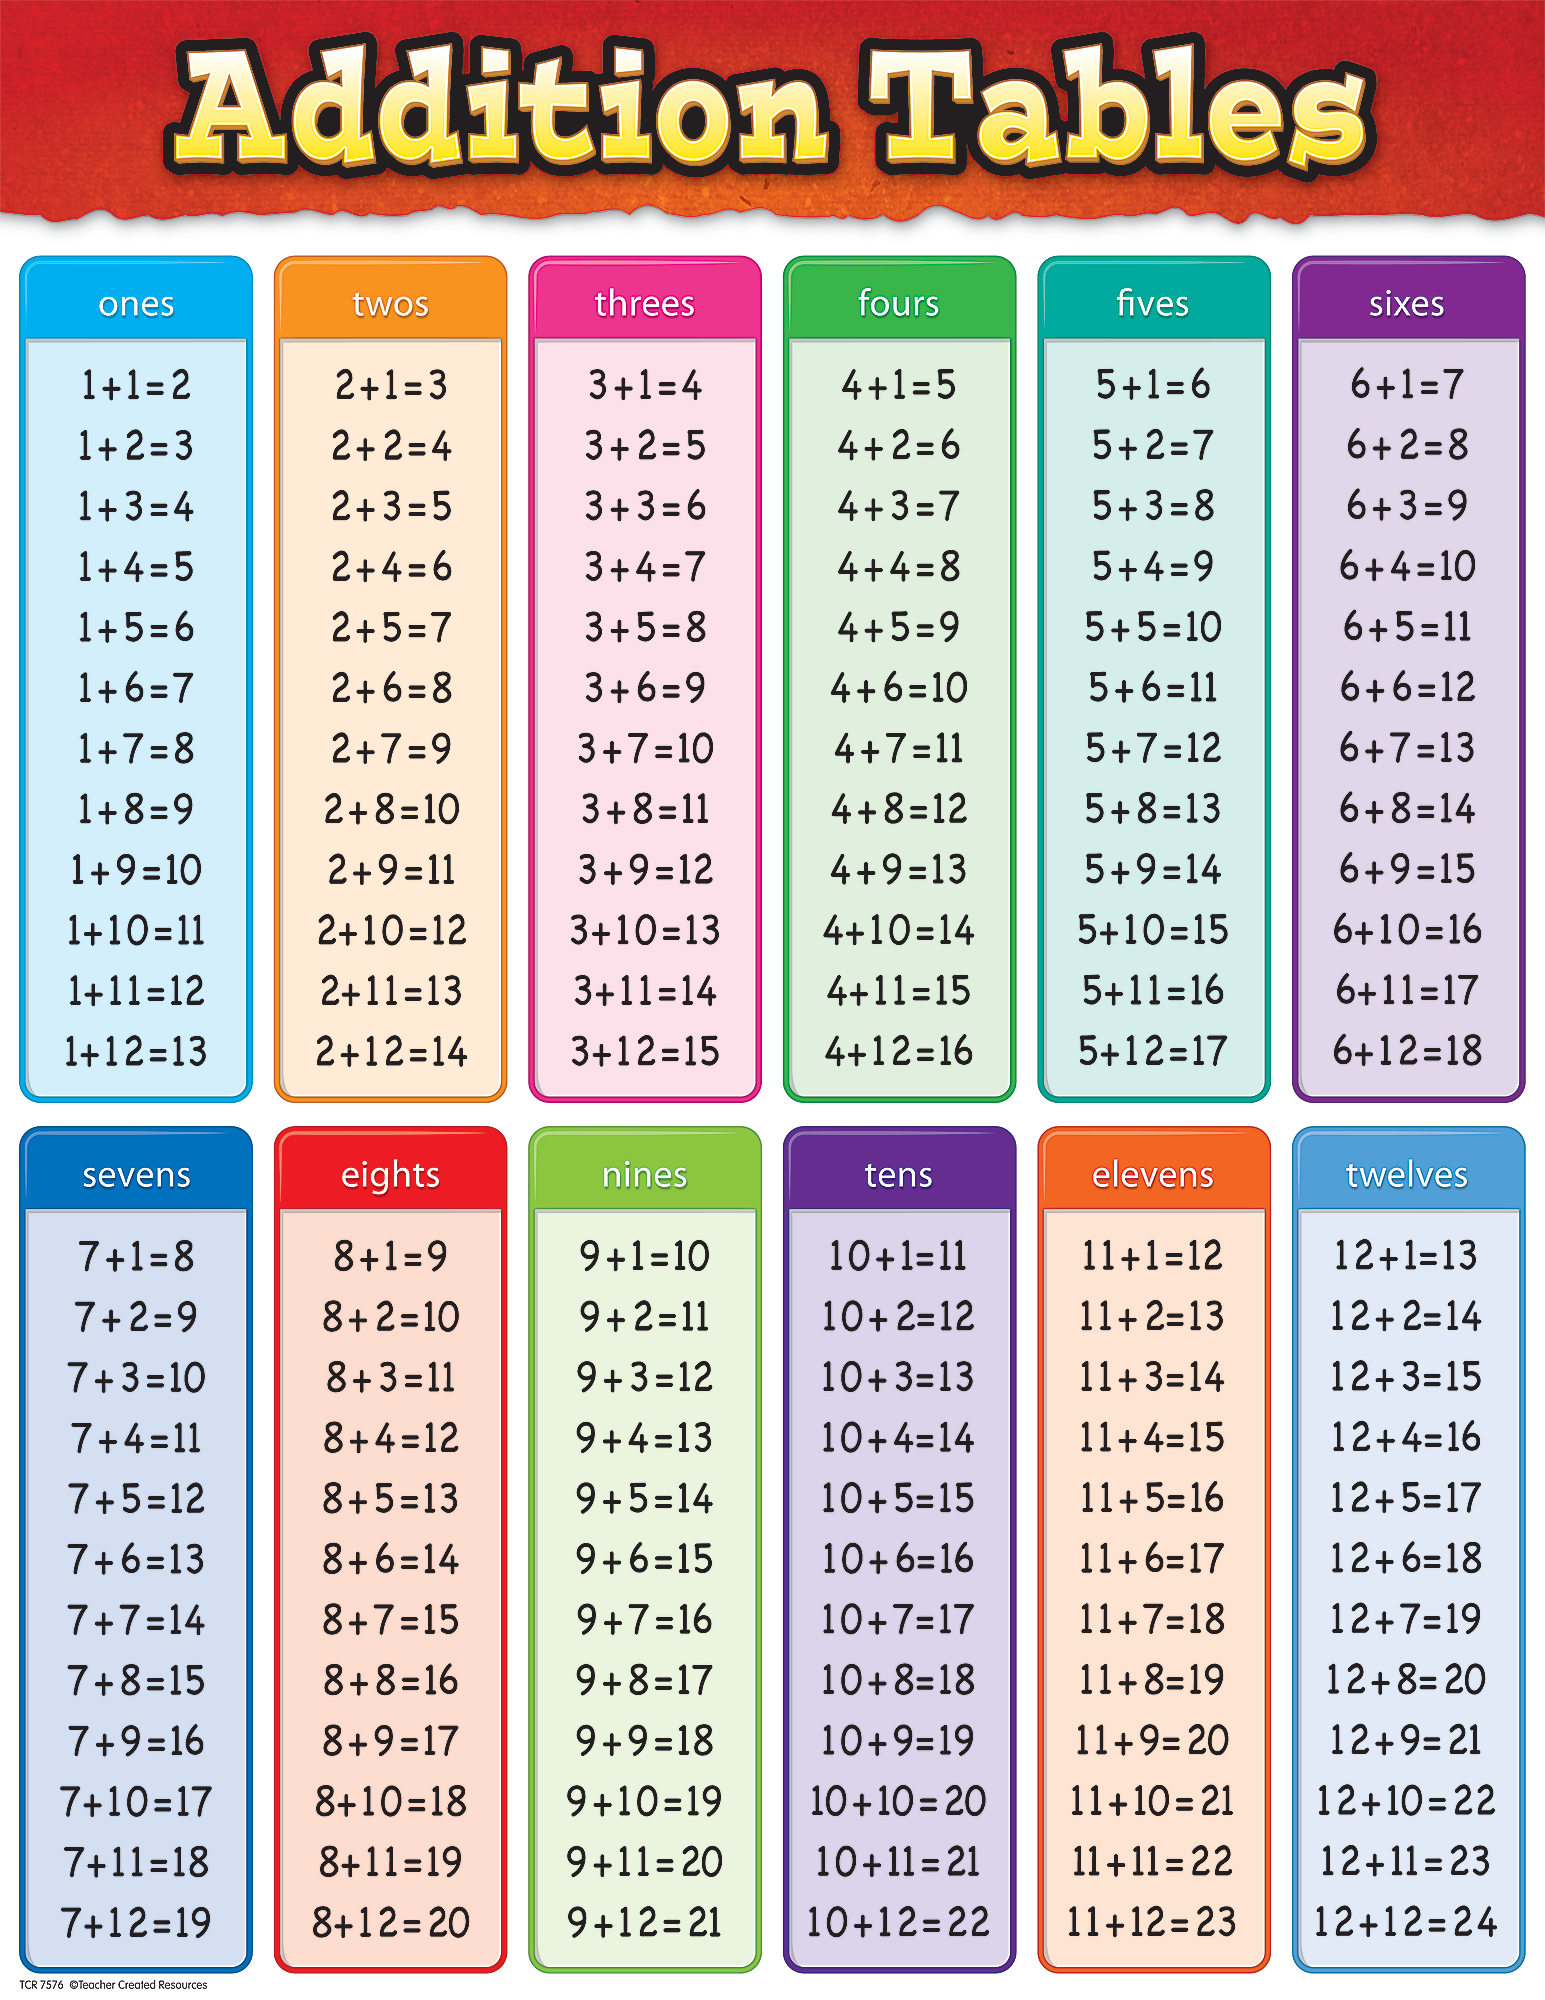 Addition Tables Chart Math Subtraction Math Charts Math Facts